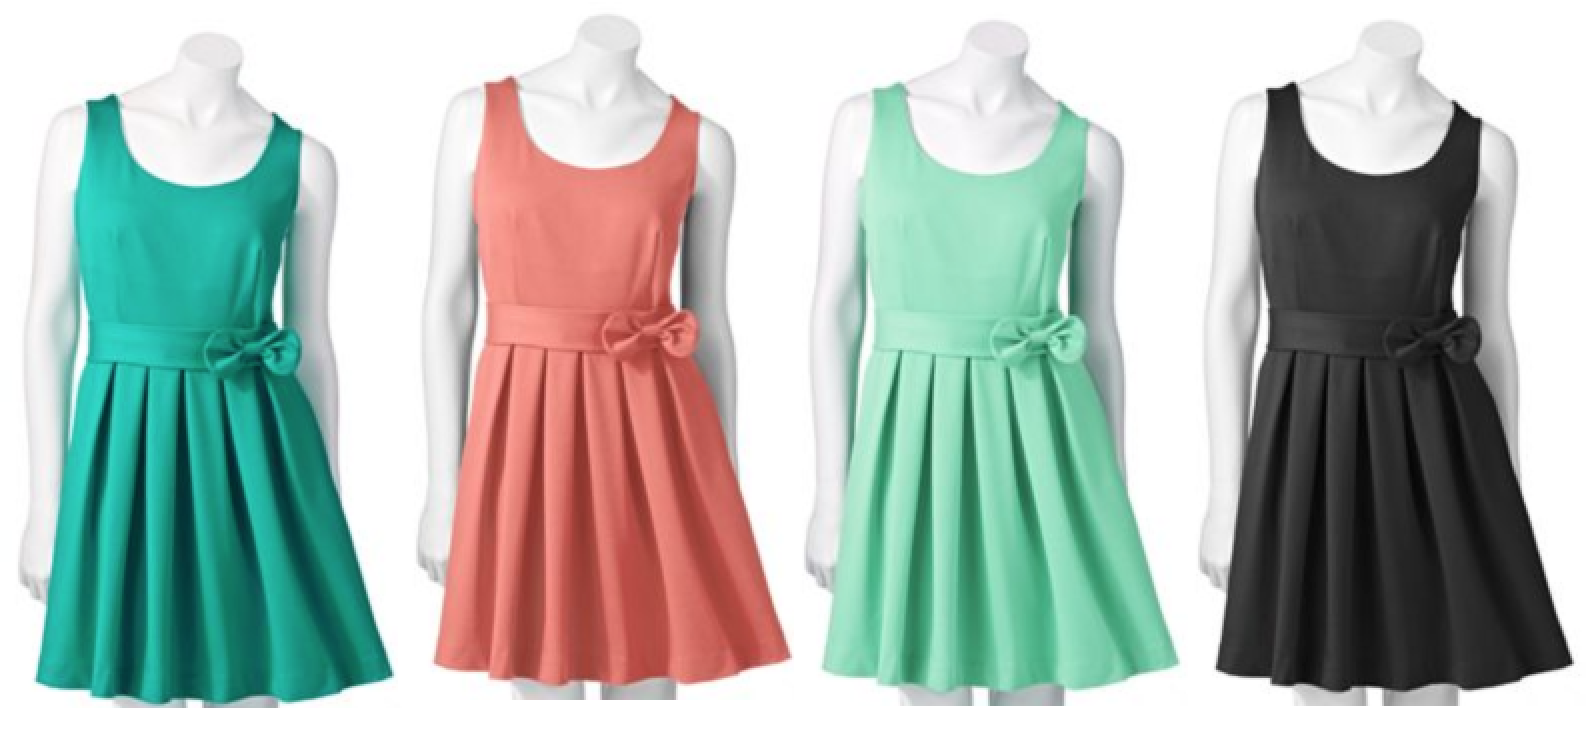 Wow if you need a cute party dress for some christmas or holiday